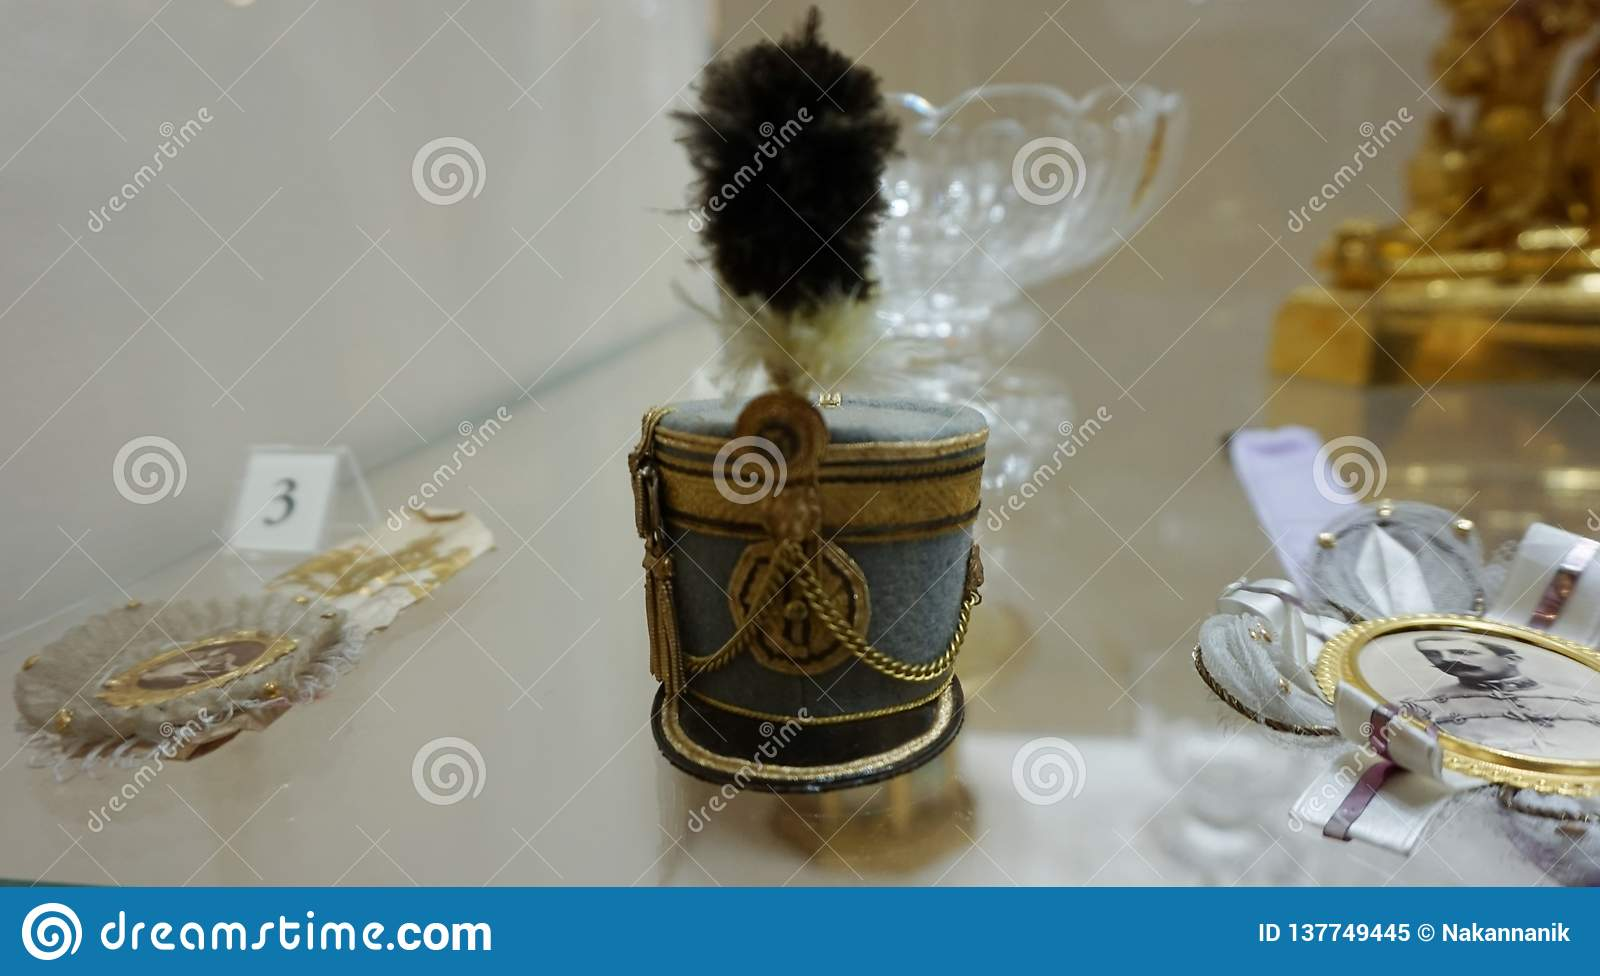 Statuette in the form of an army hat on the table.